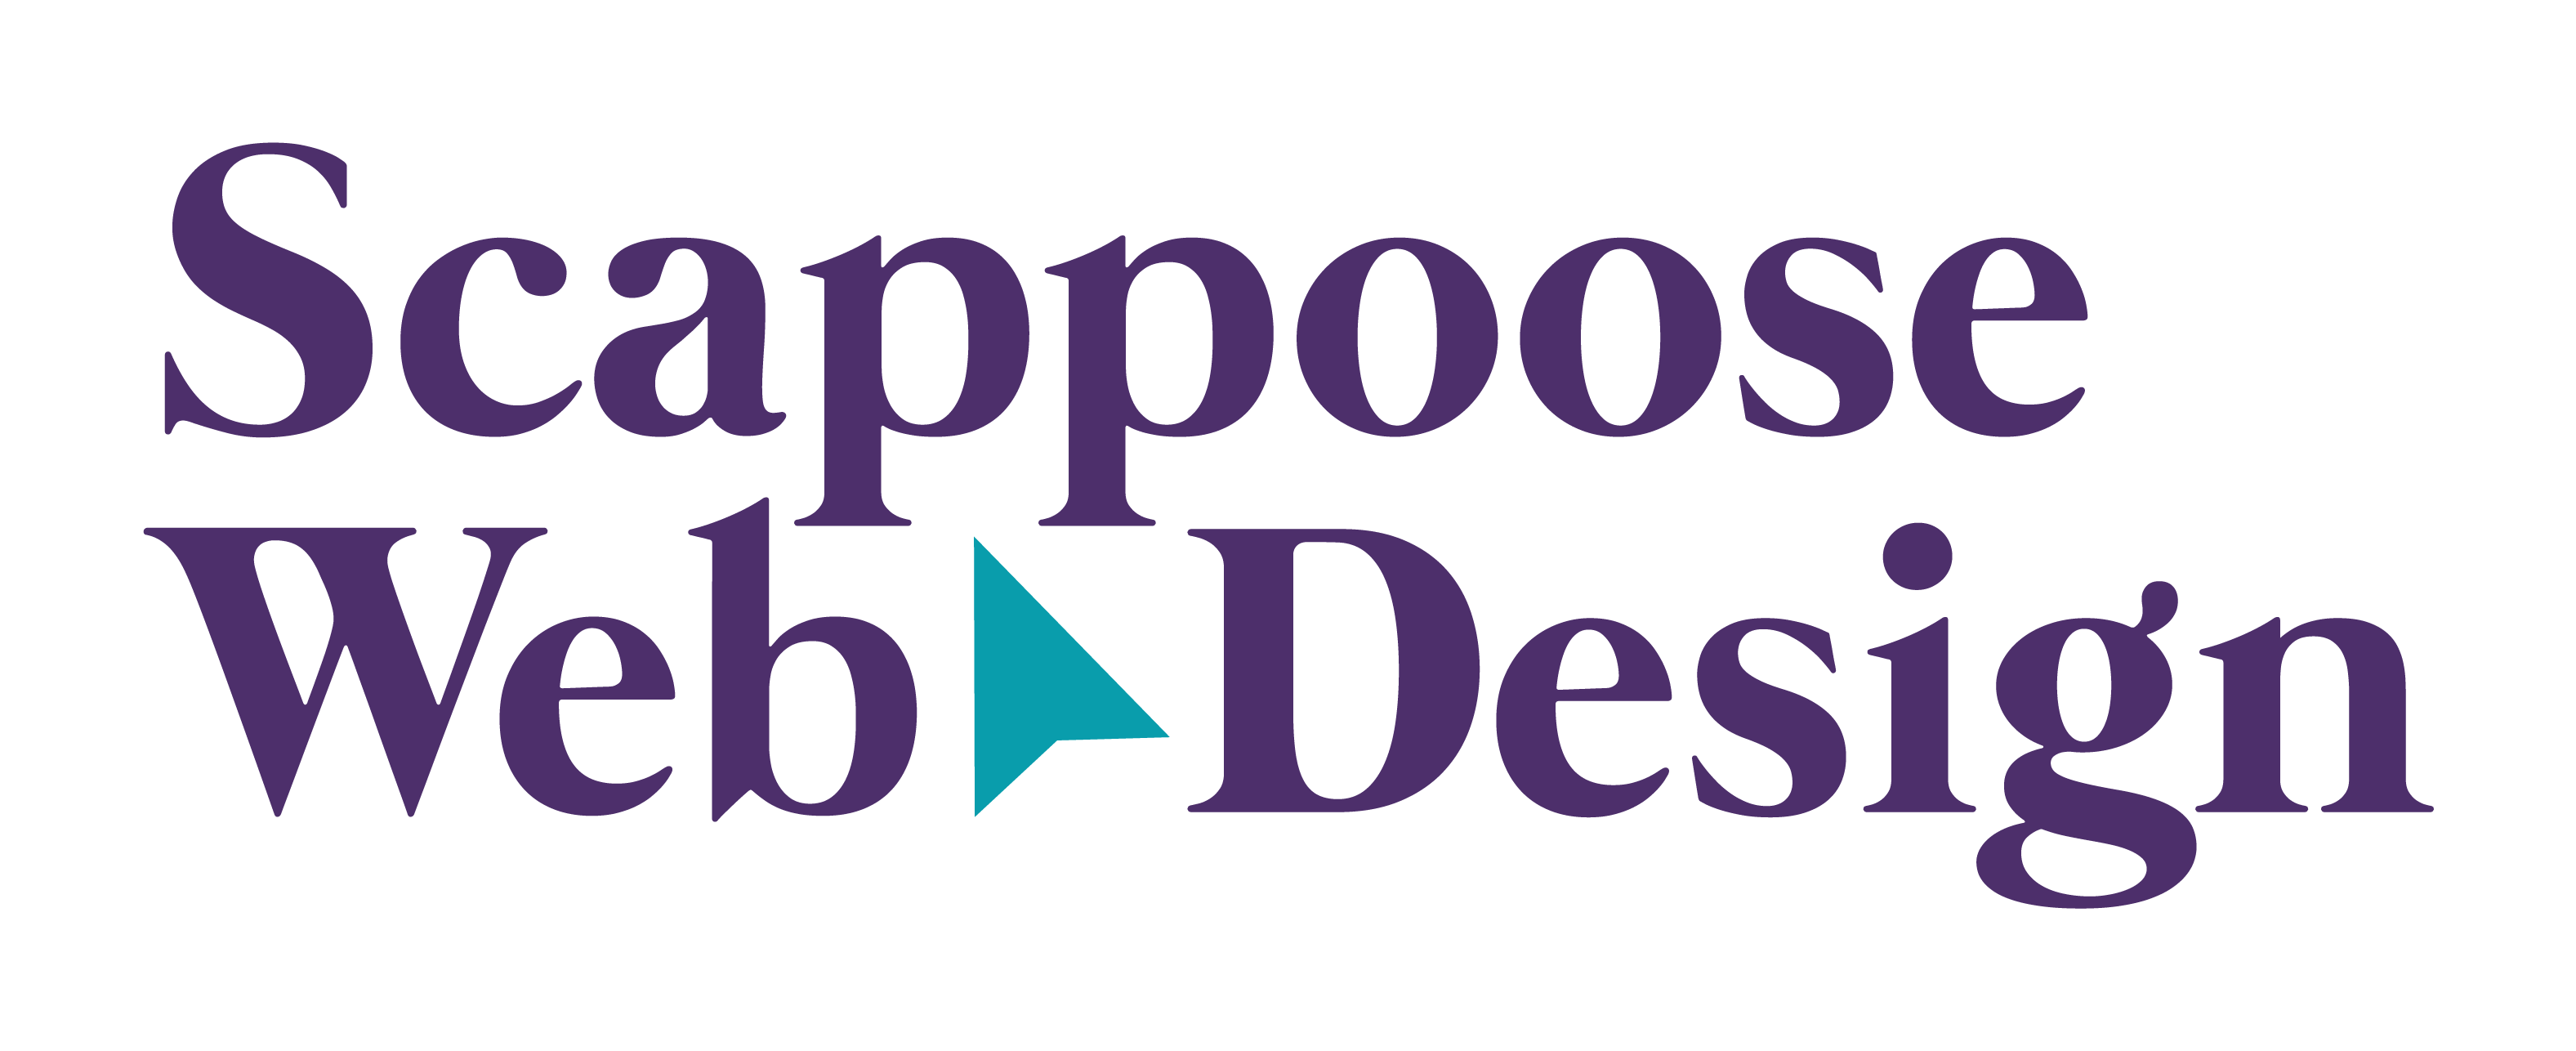 scappoose web design logo